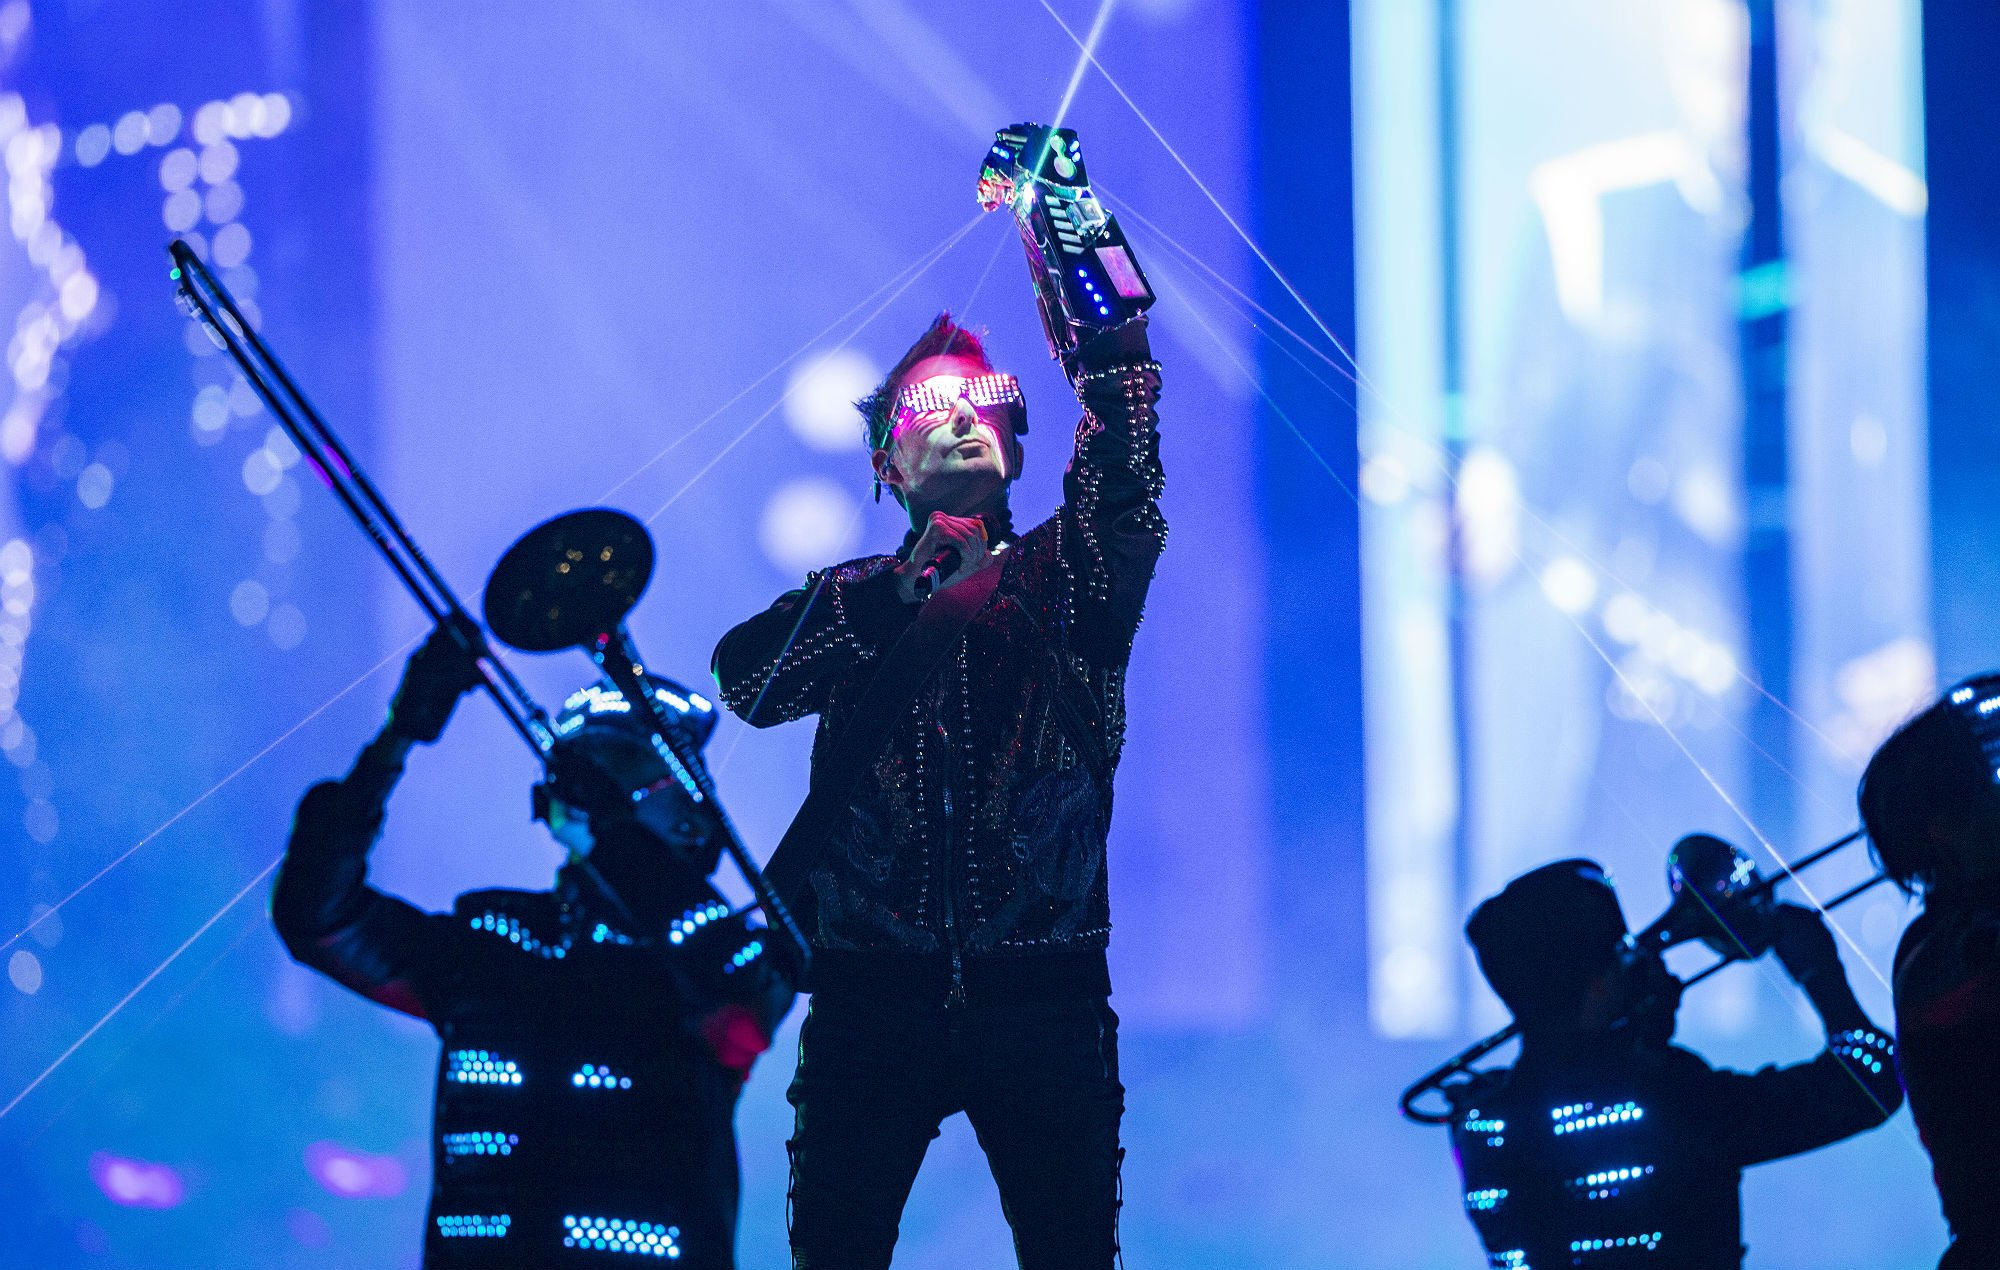 ". @Muse admit they've ""finally gone too far"" with their current world tour https://t.co/EQUVT2Rk3U https://t.co/y4oMV8WhPY"